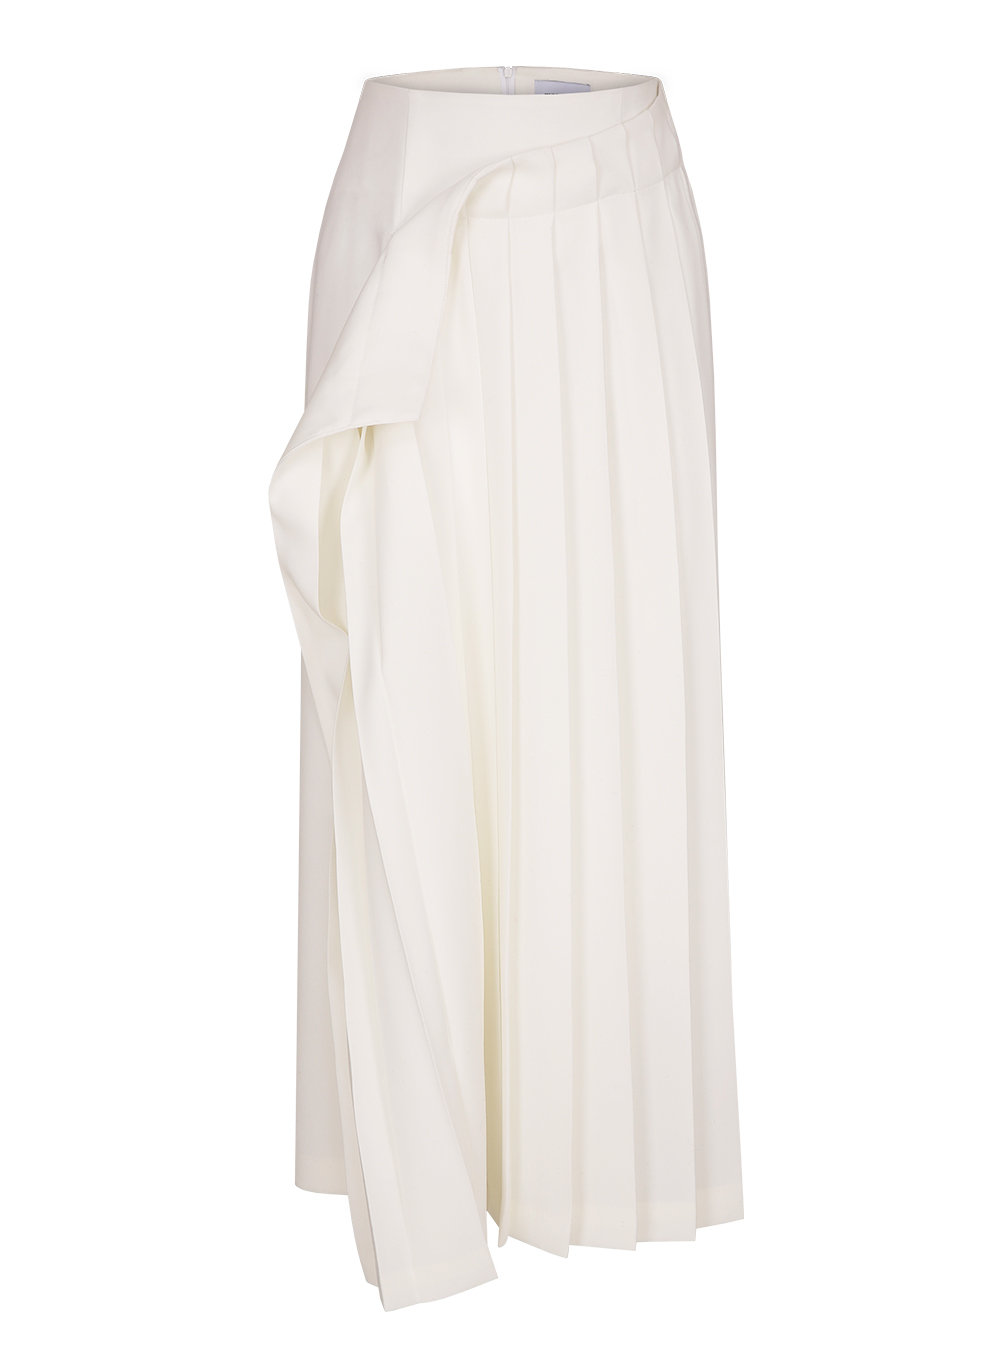 FW18 ASYMMETRY PLEATS SKIRT WHITE